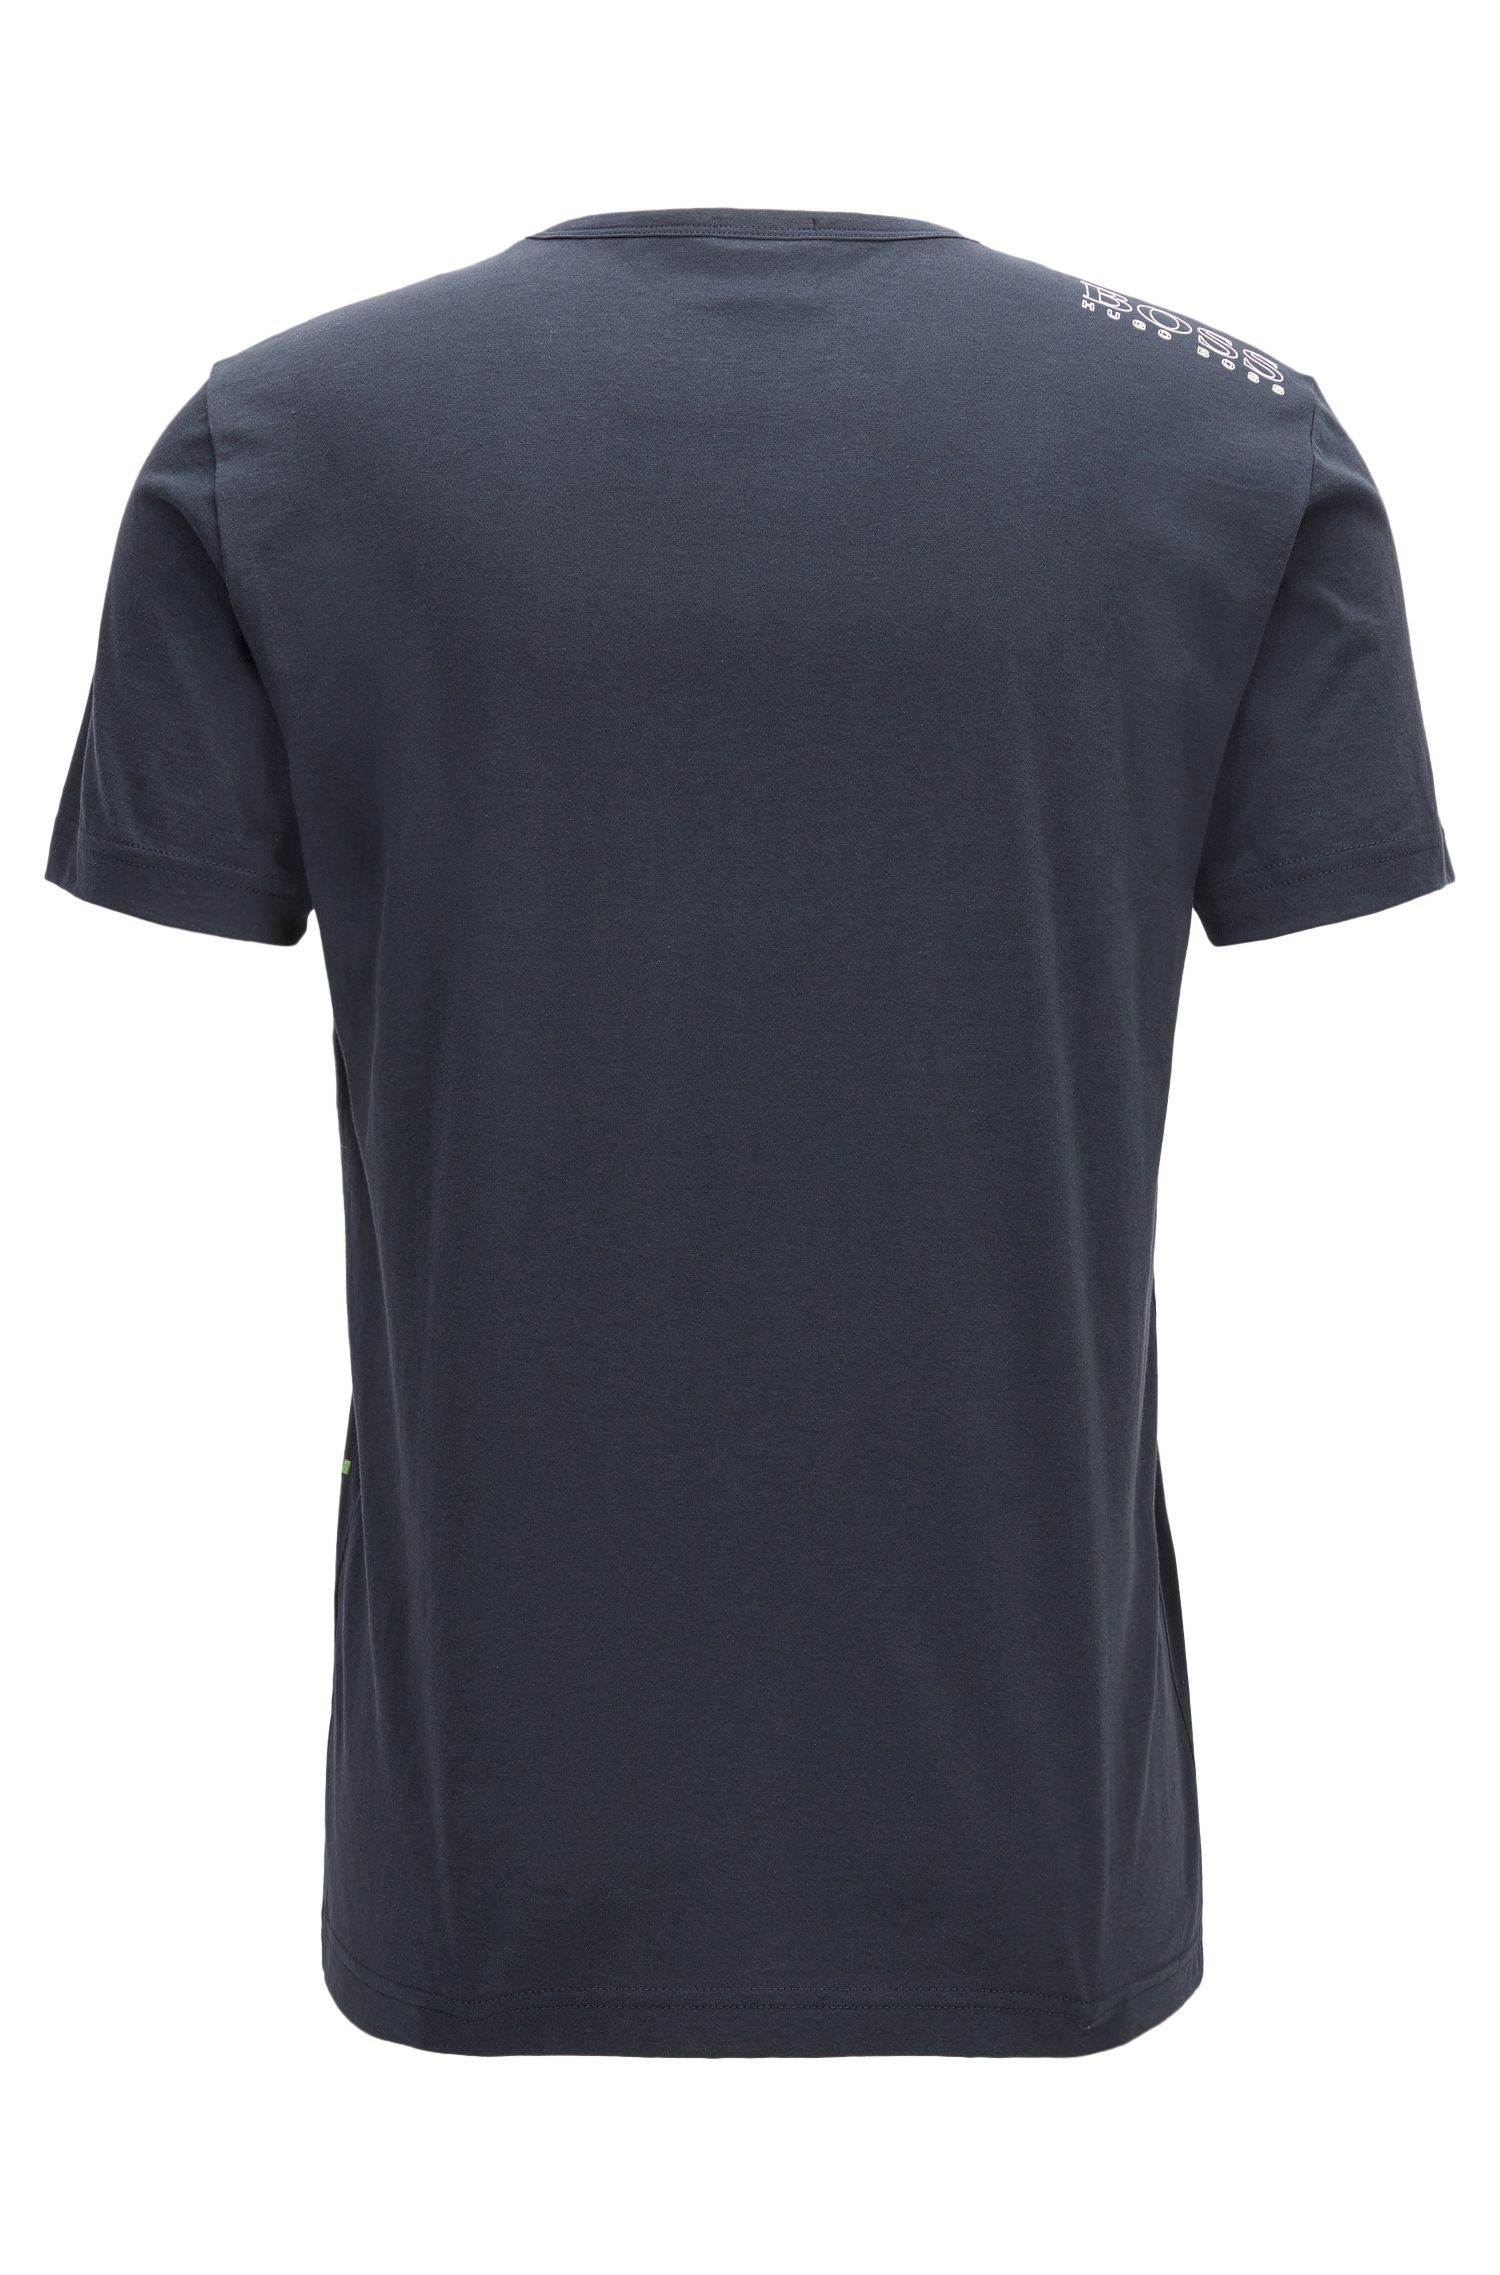 Regular-Fit T-Shirt mit Kontrast-Detail